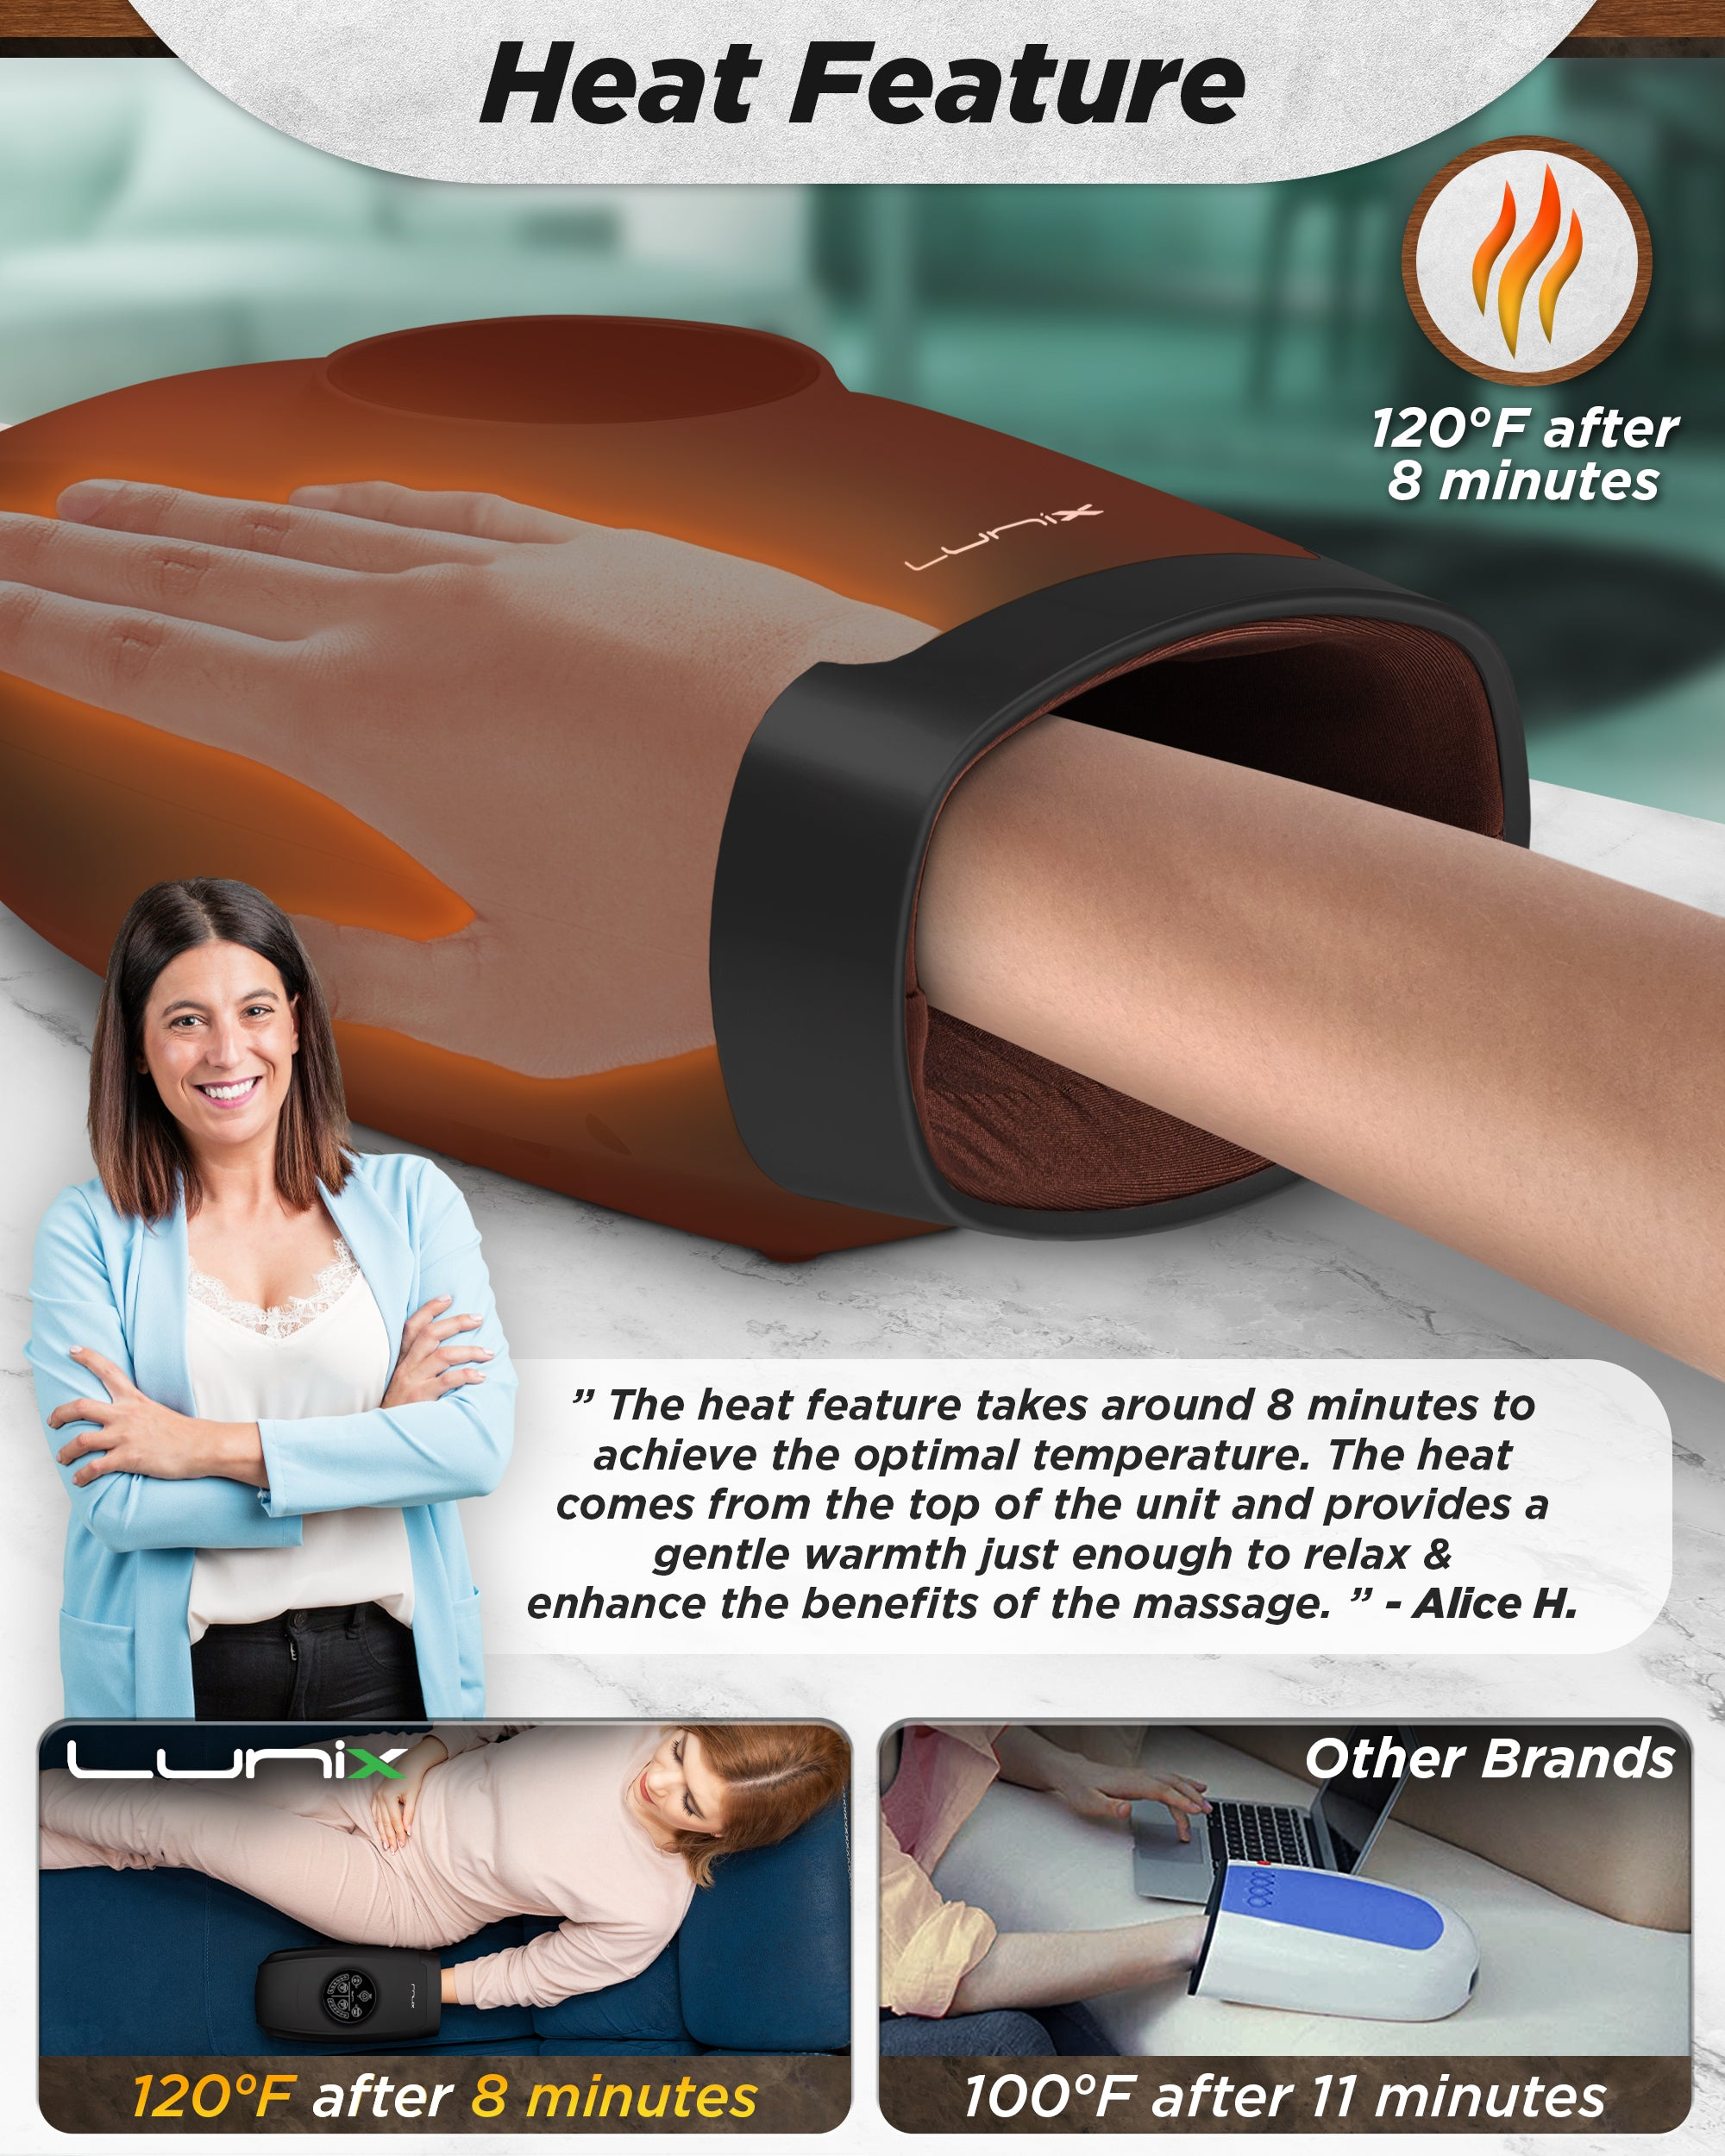 Lunix LX3 Cordless Hand Massager Black